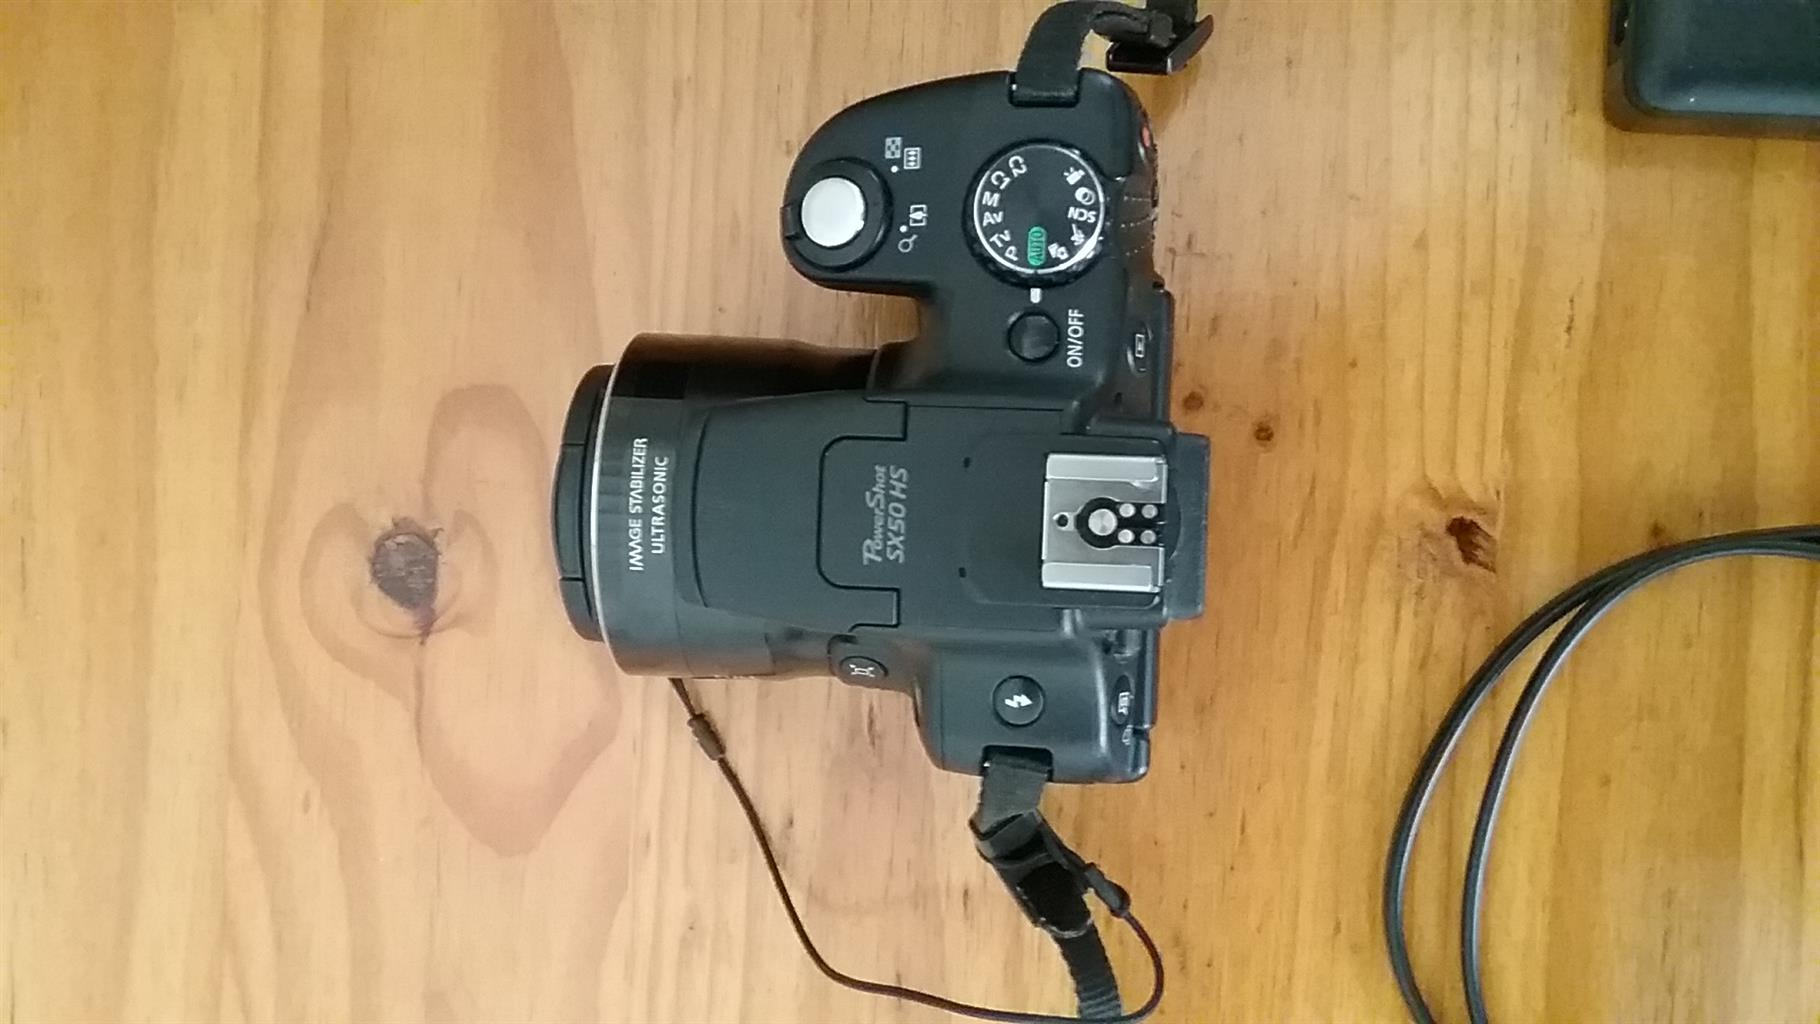 Canon Power Shot SX50HS Camera (for sale in St Helena Bay)